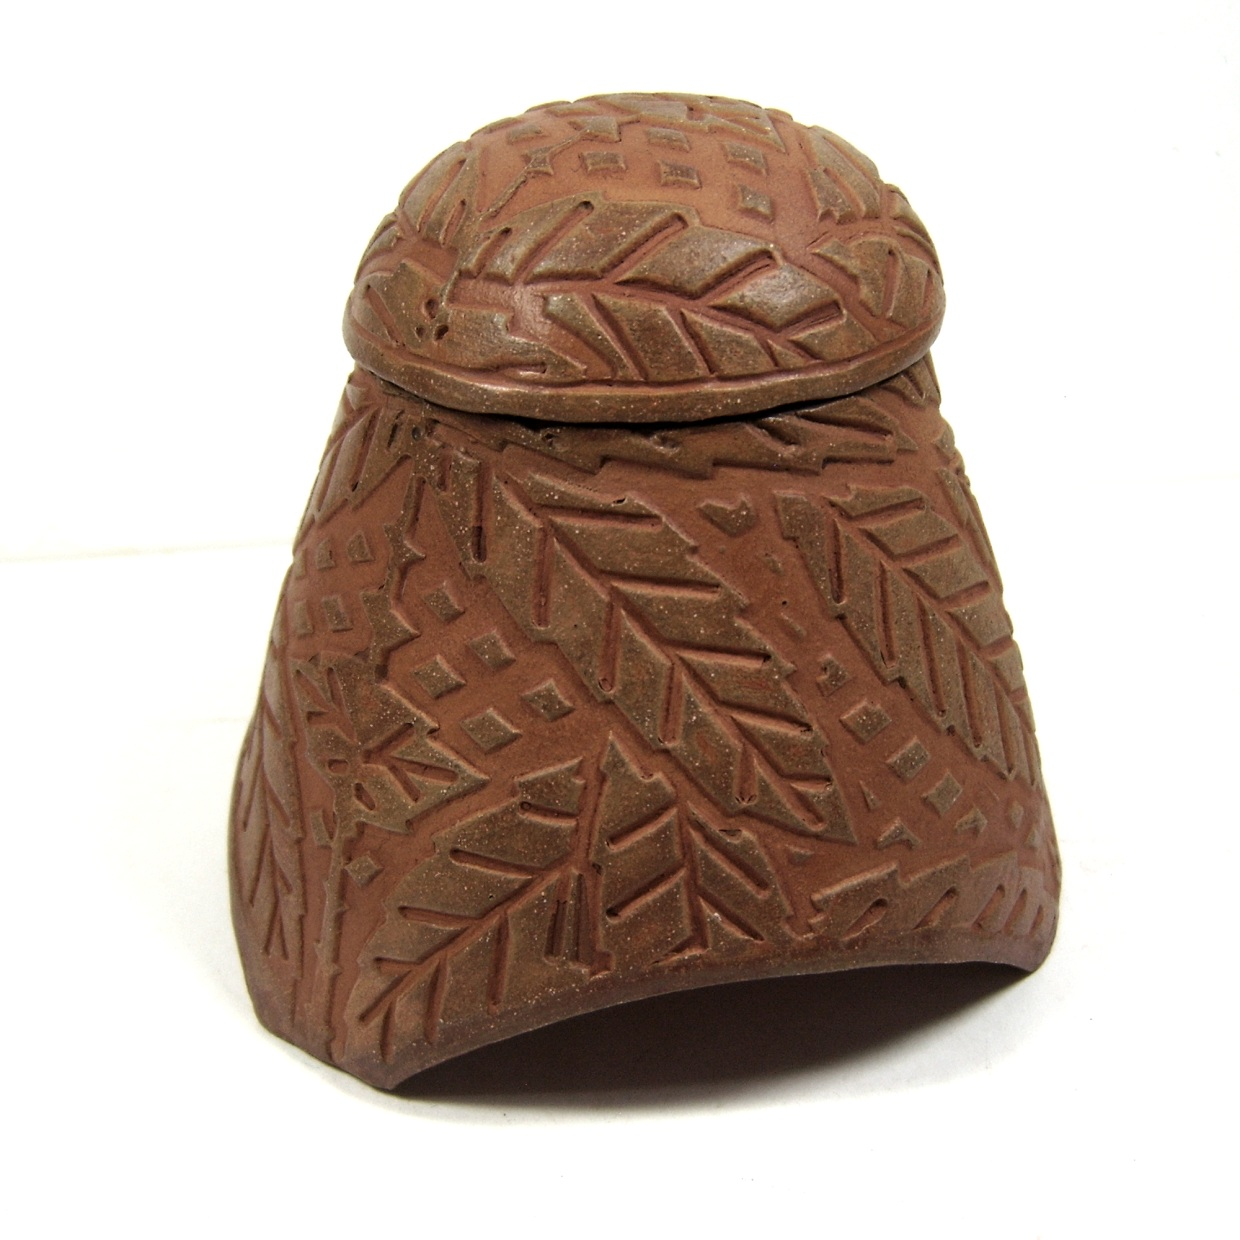 Dome Lidded Lattice Leaf Vessel